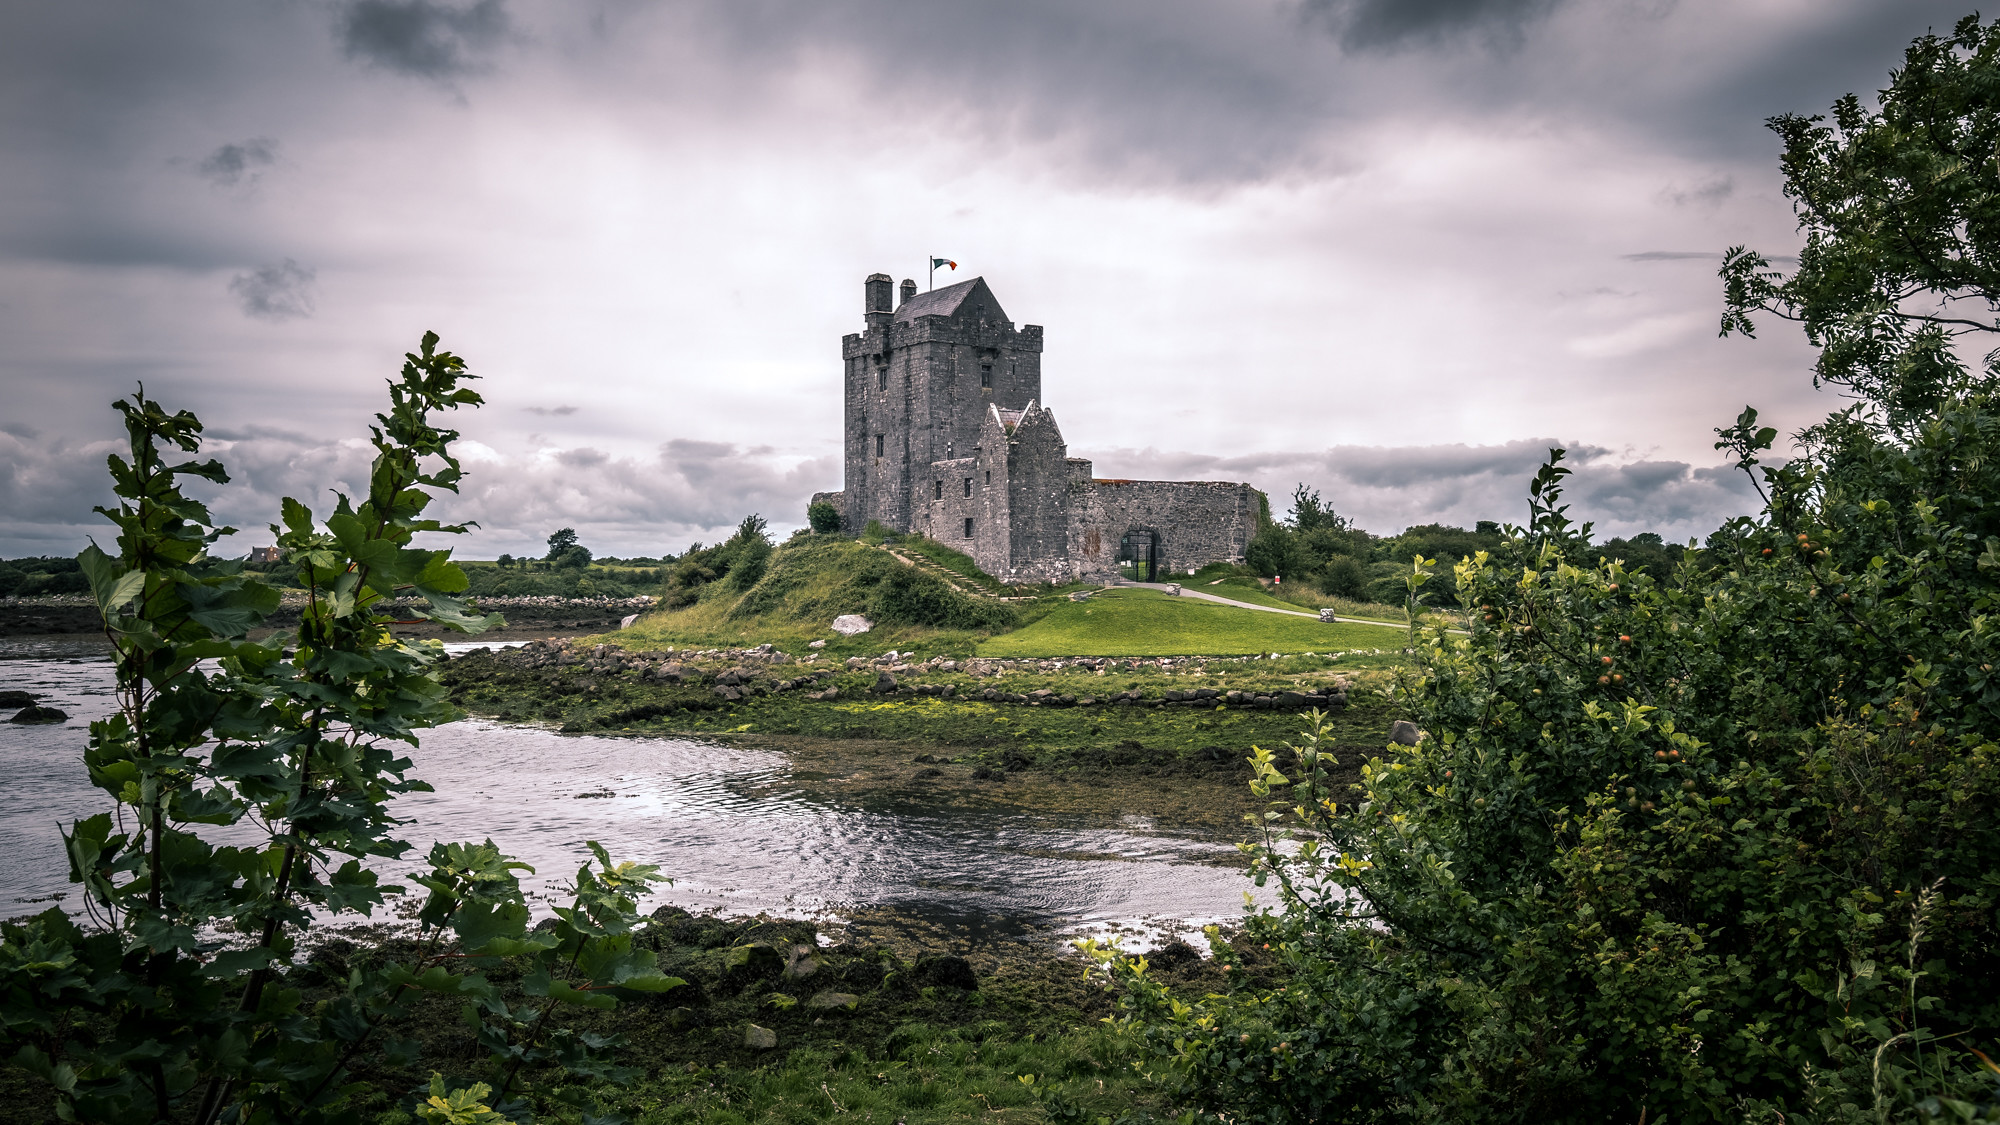 Dunguaire Castle - Kinvara, Ireland - Travel photography